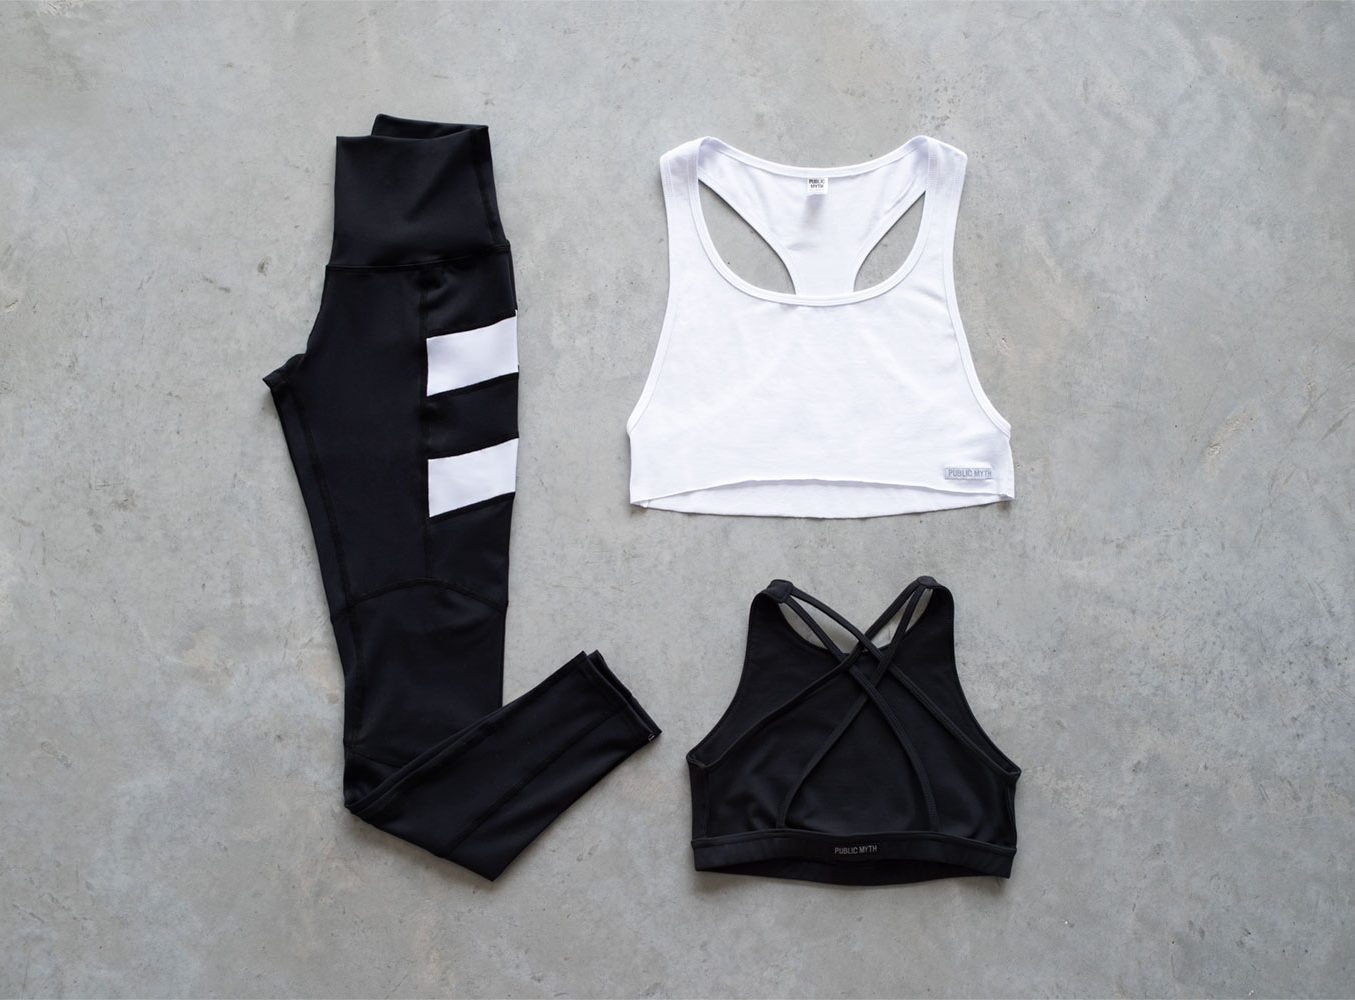 The Empire Legging: A Bold New Look!